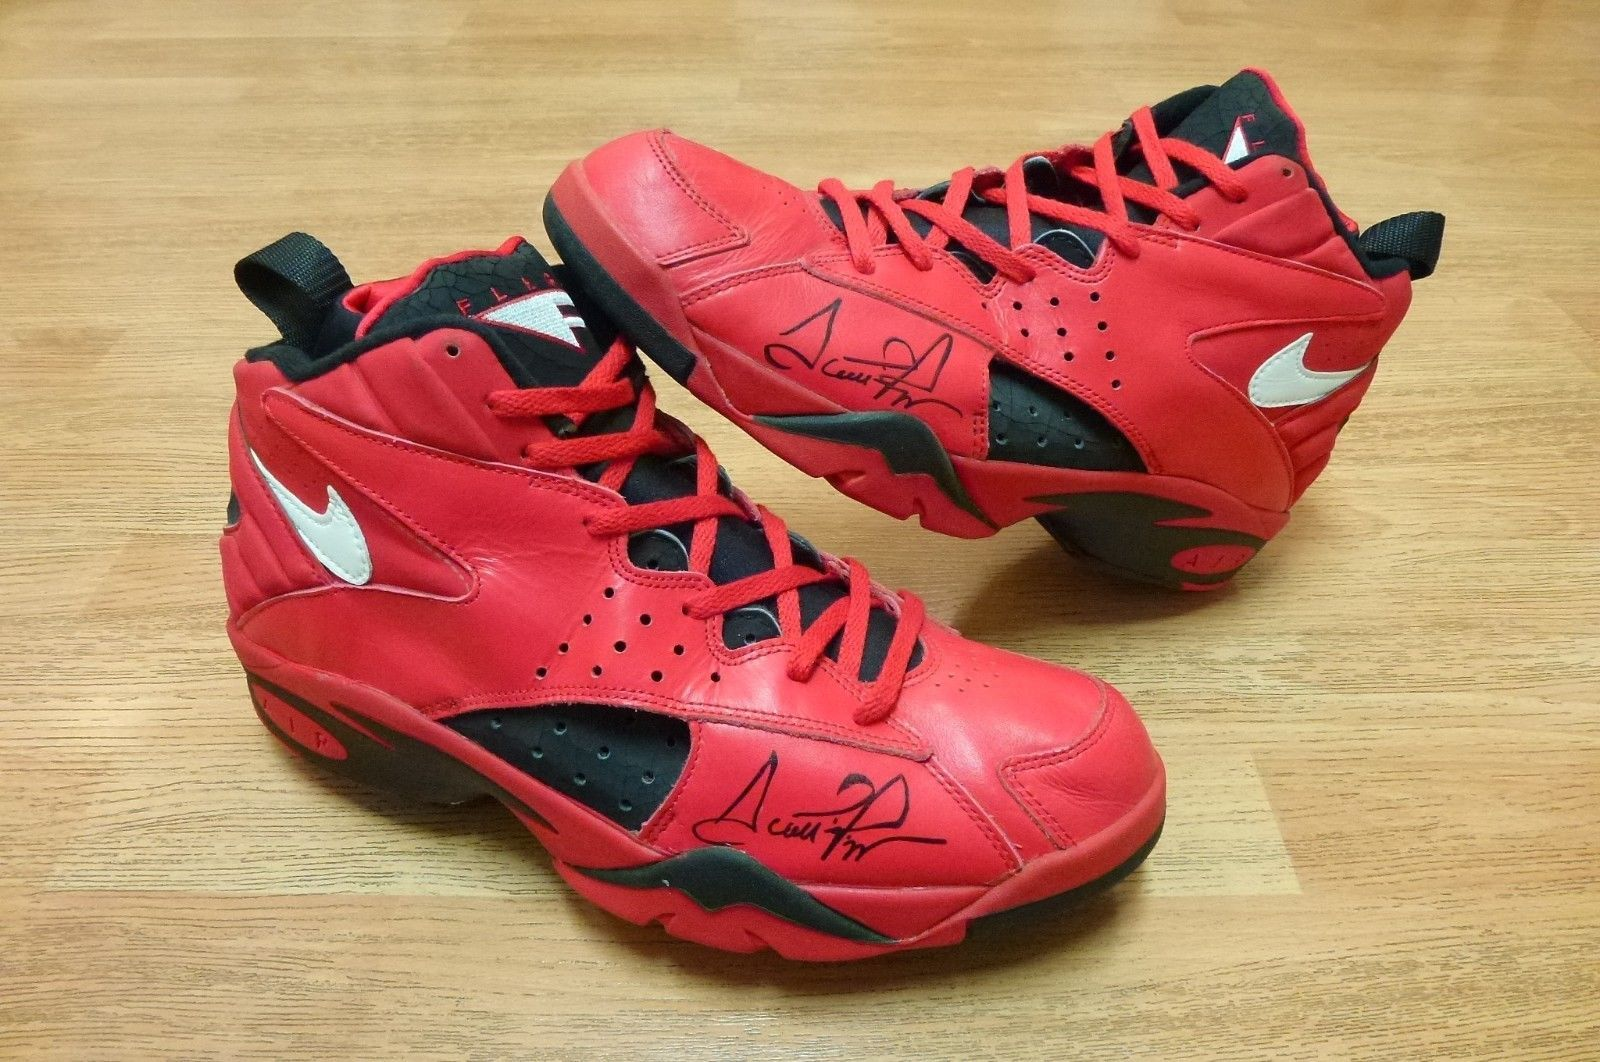 Scottie Pippen's All-Star Red Nike Air